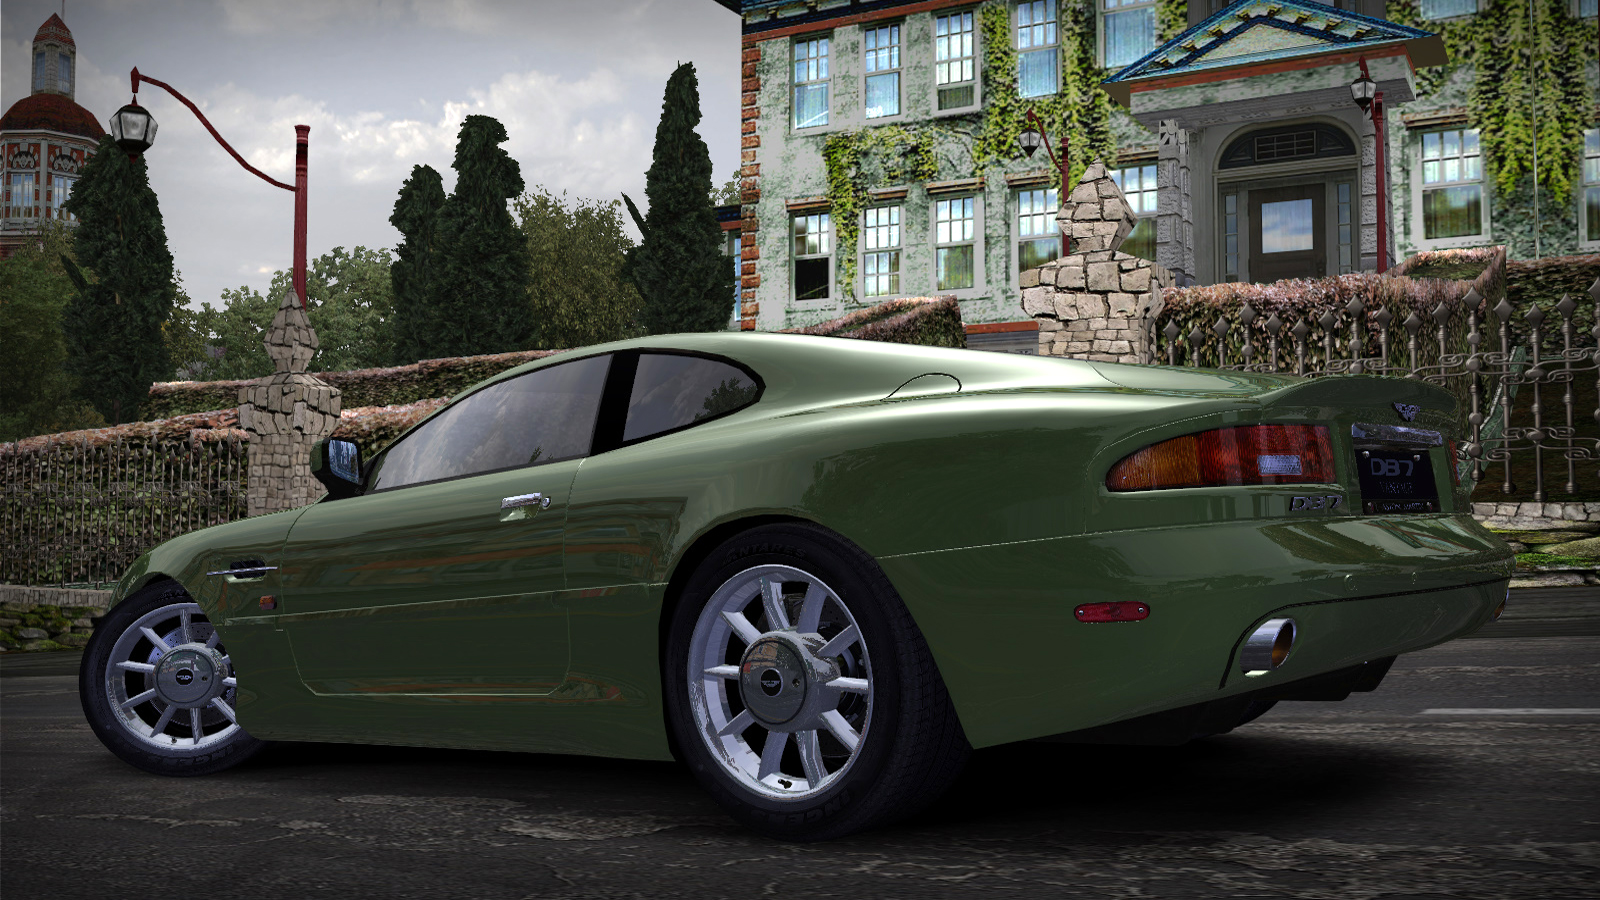 Speed 2020-01-05 18-51-43-913.jpg - Need for Speed: Most Wanted (2005) Aston Martin DB7 Vantage, Автомобиль